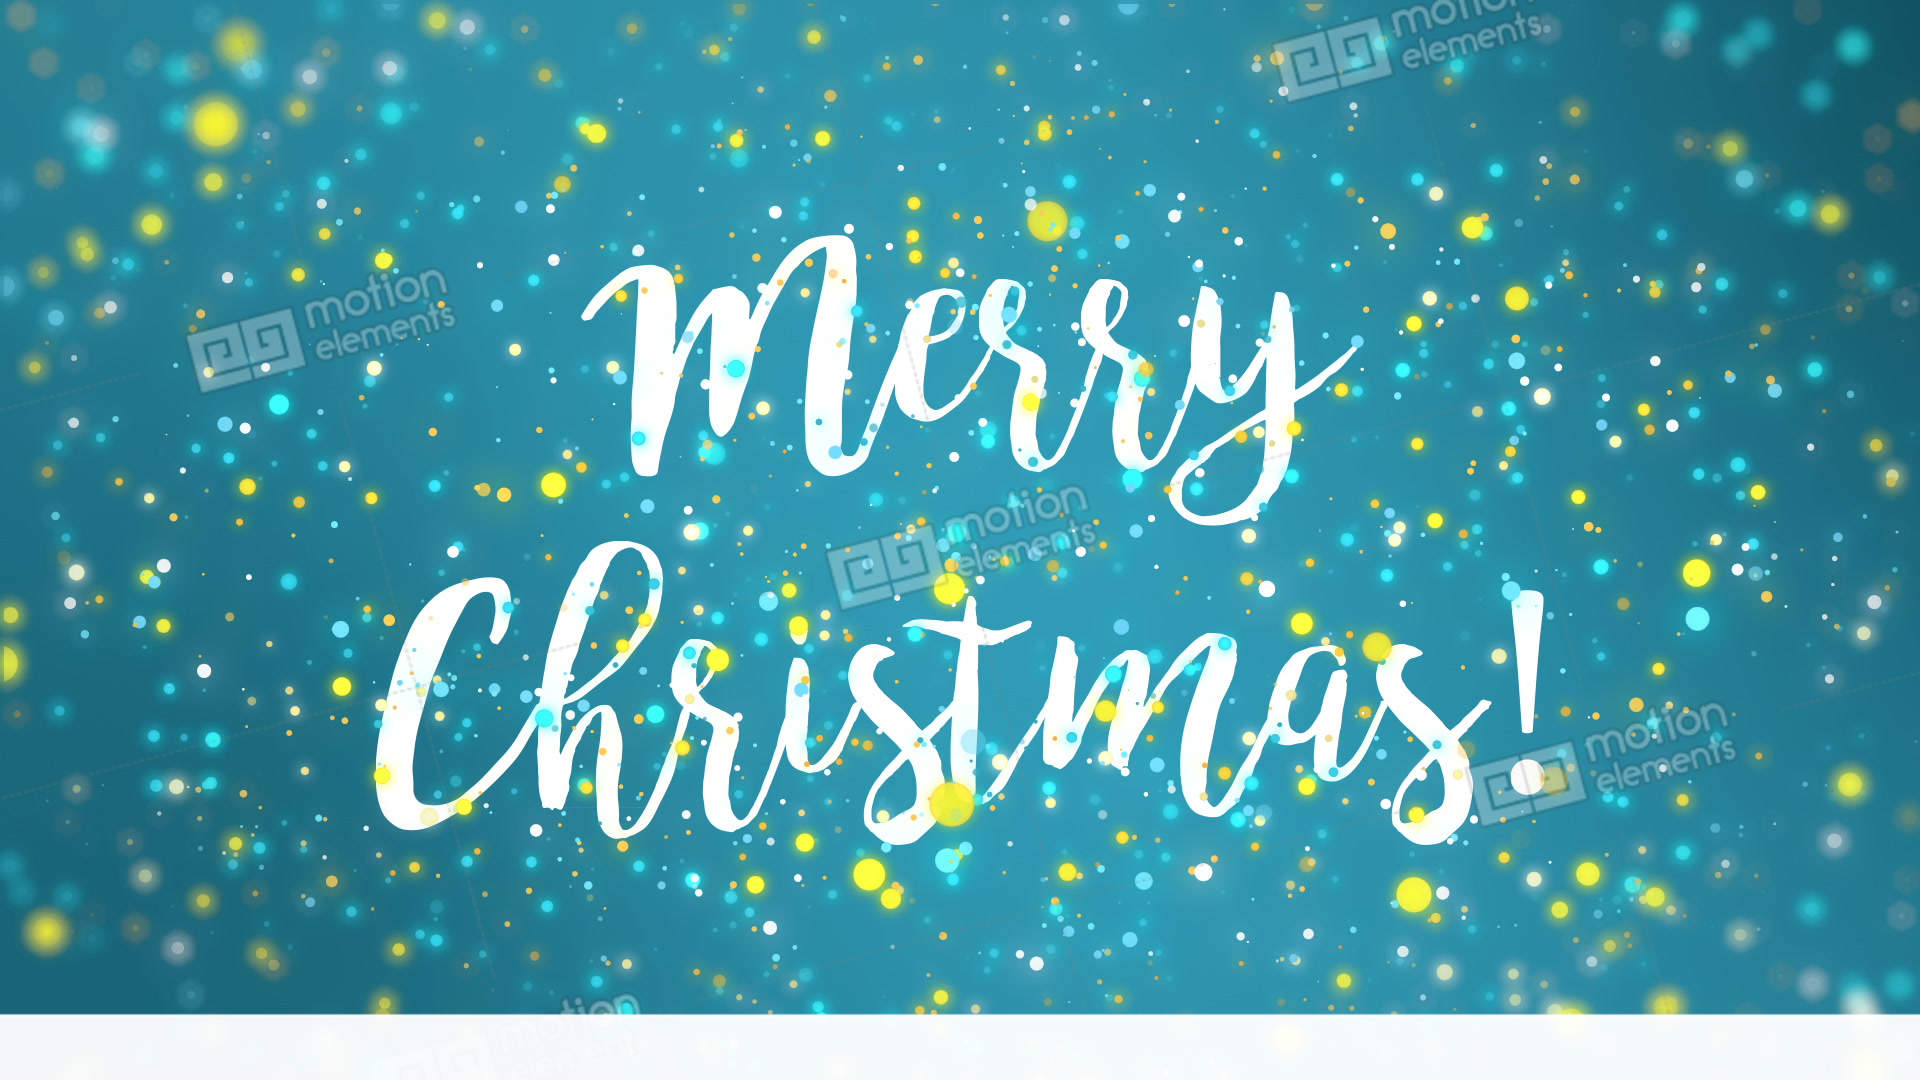 Sparkly blue yellow merry christmas greeting card video stock sparkly blue yellow merry christmas greeting card video stock video footage m4hsunfo